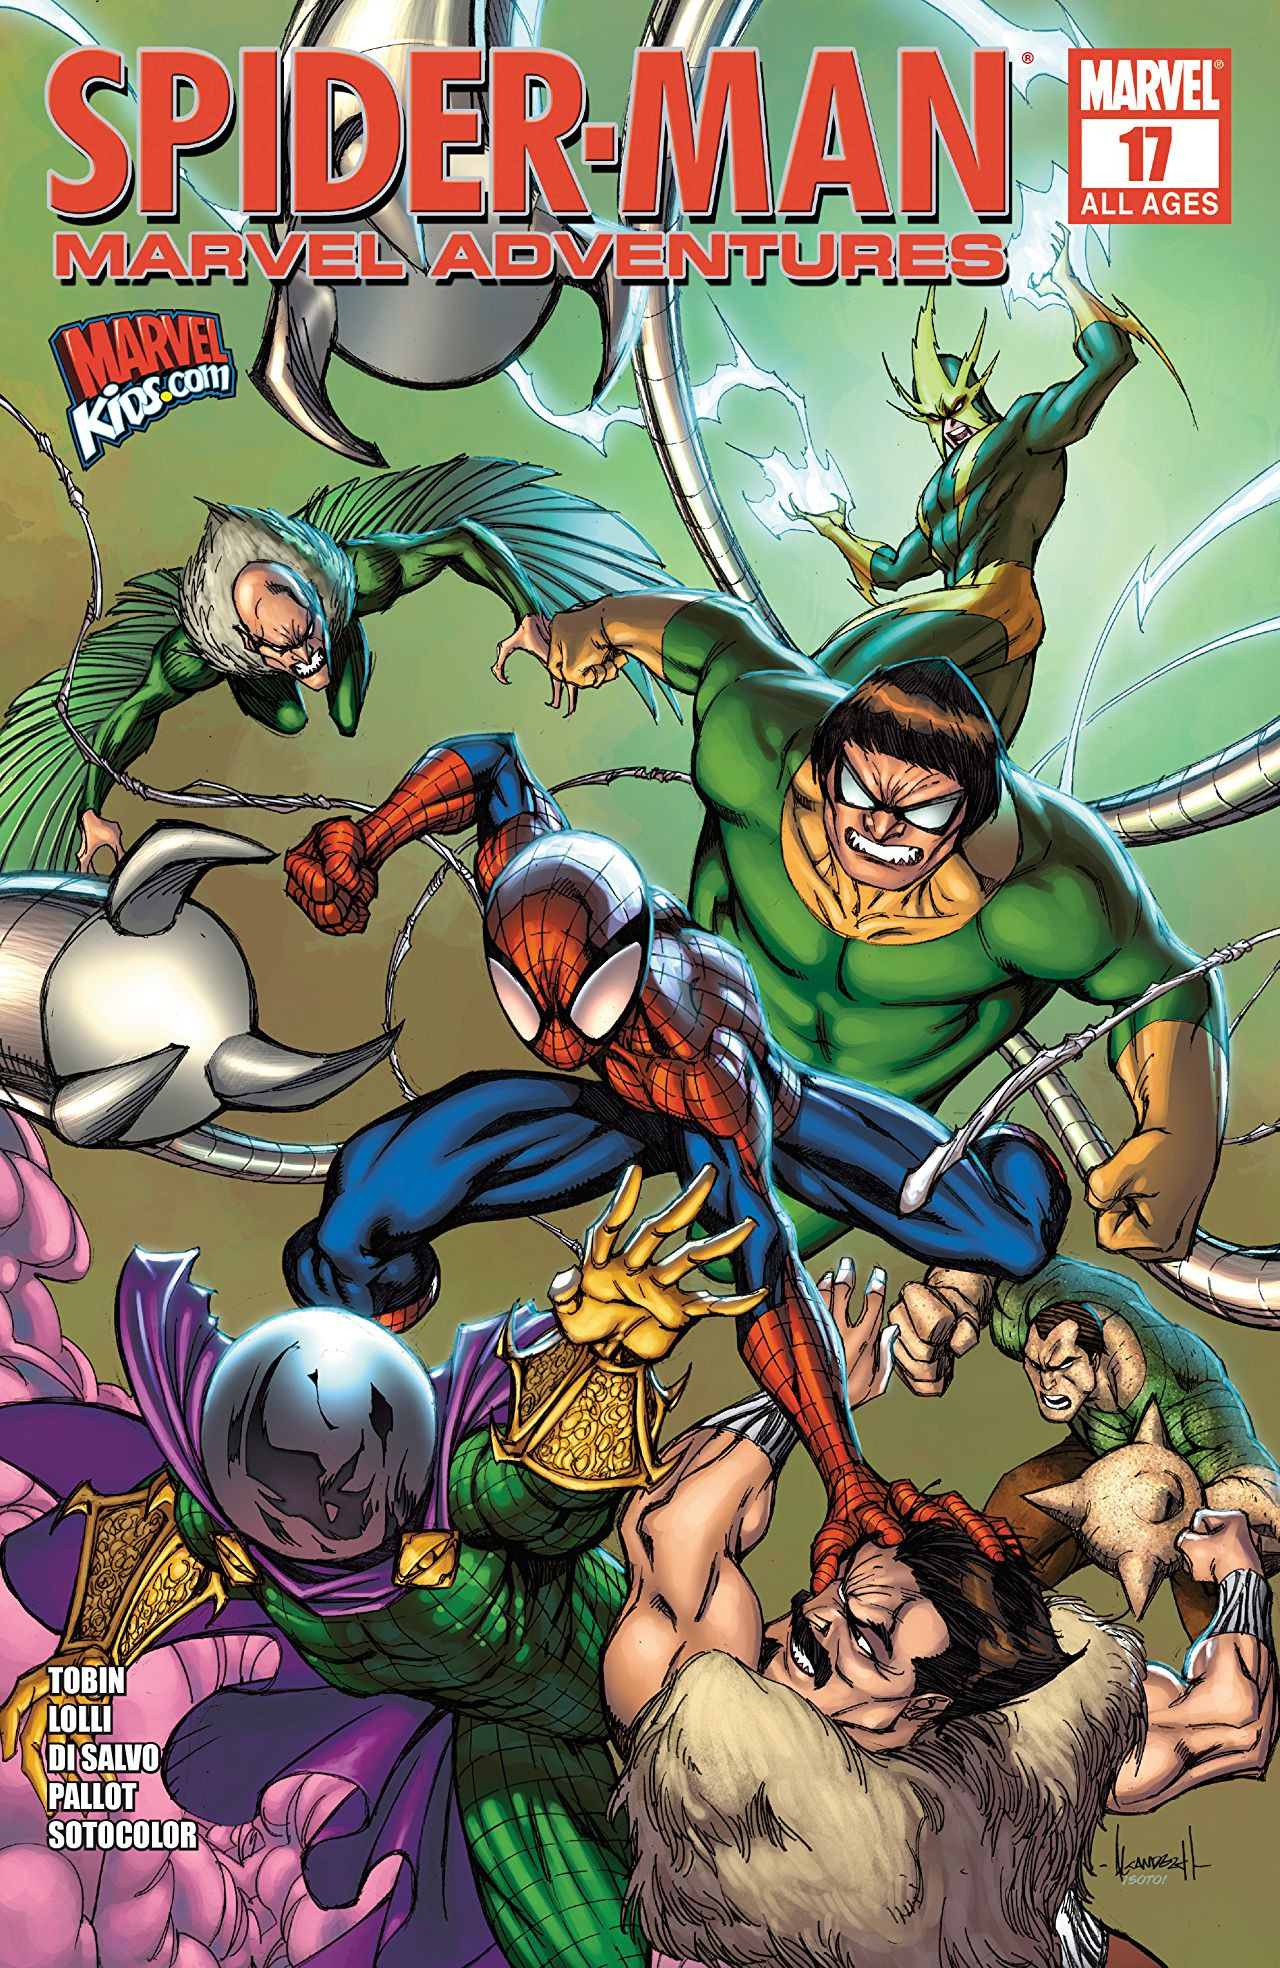 Marvel Adventures: Spider-Man Vol 2 17